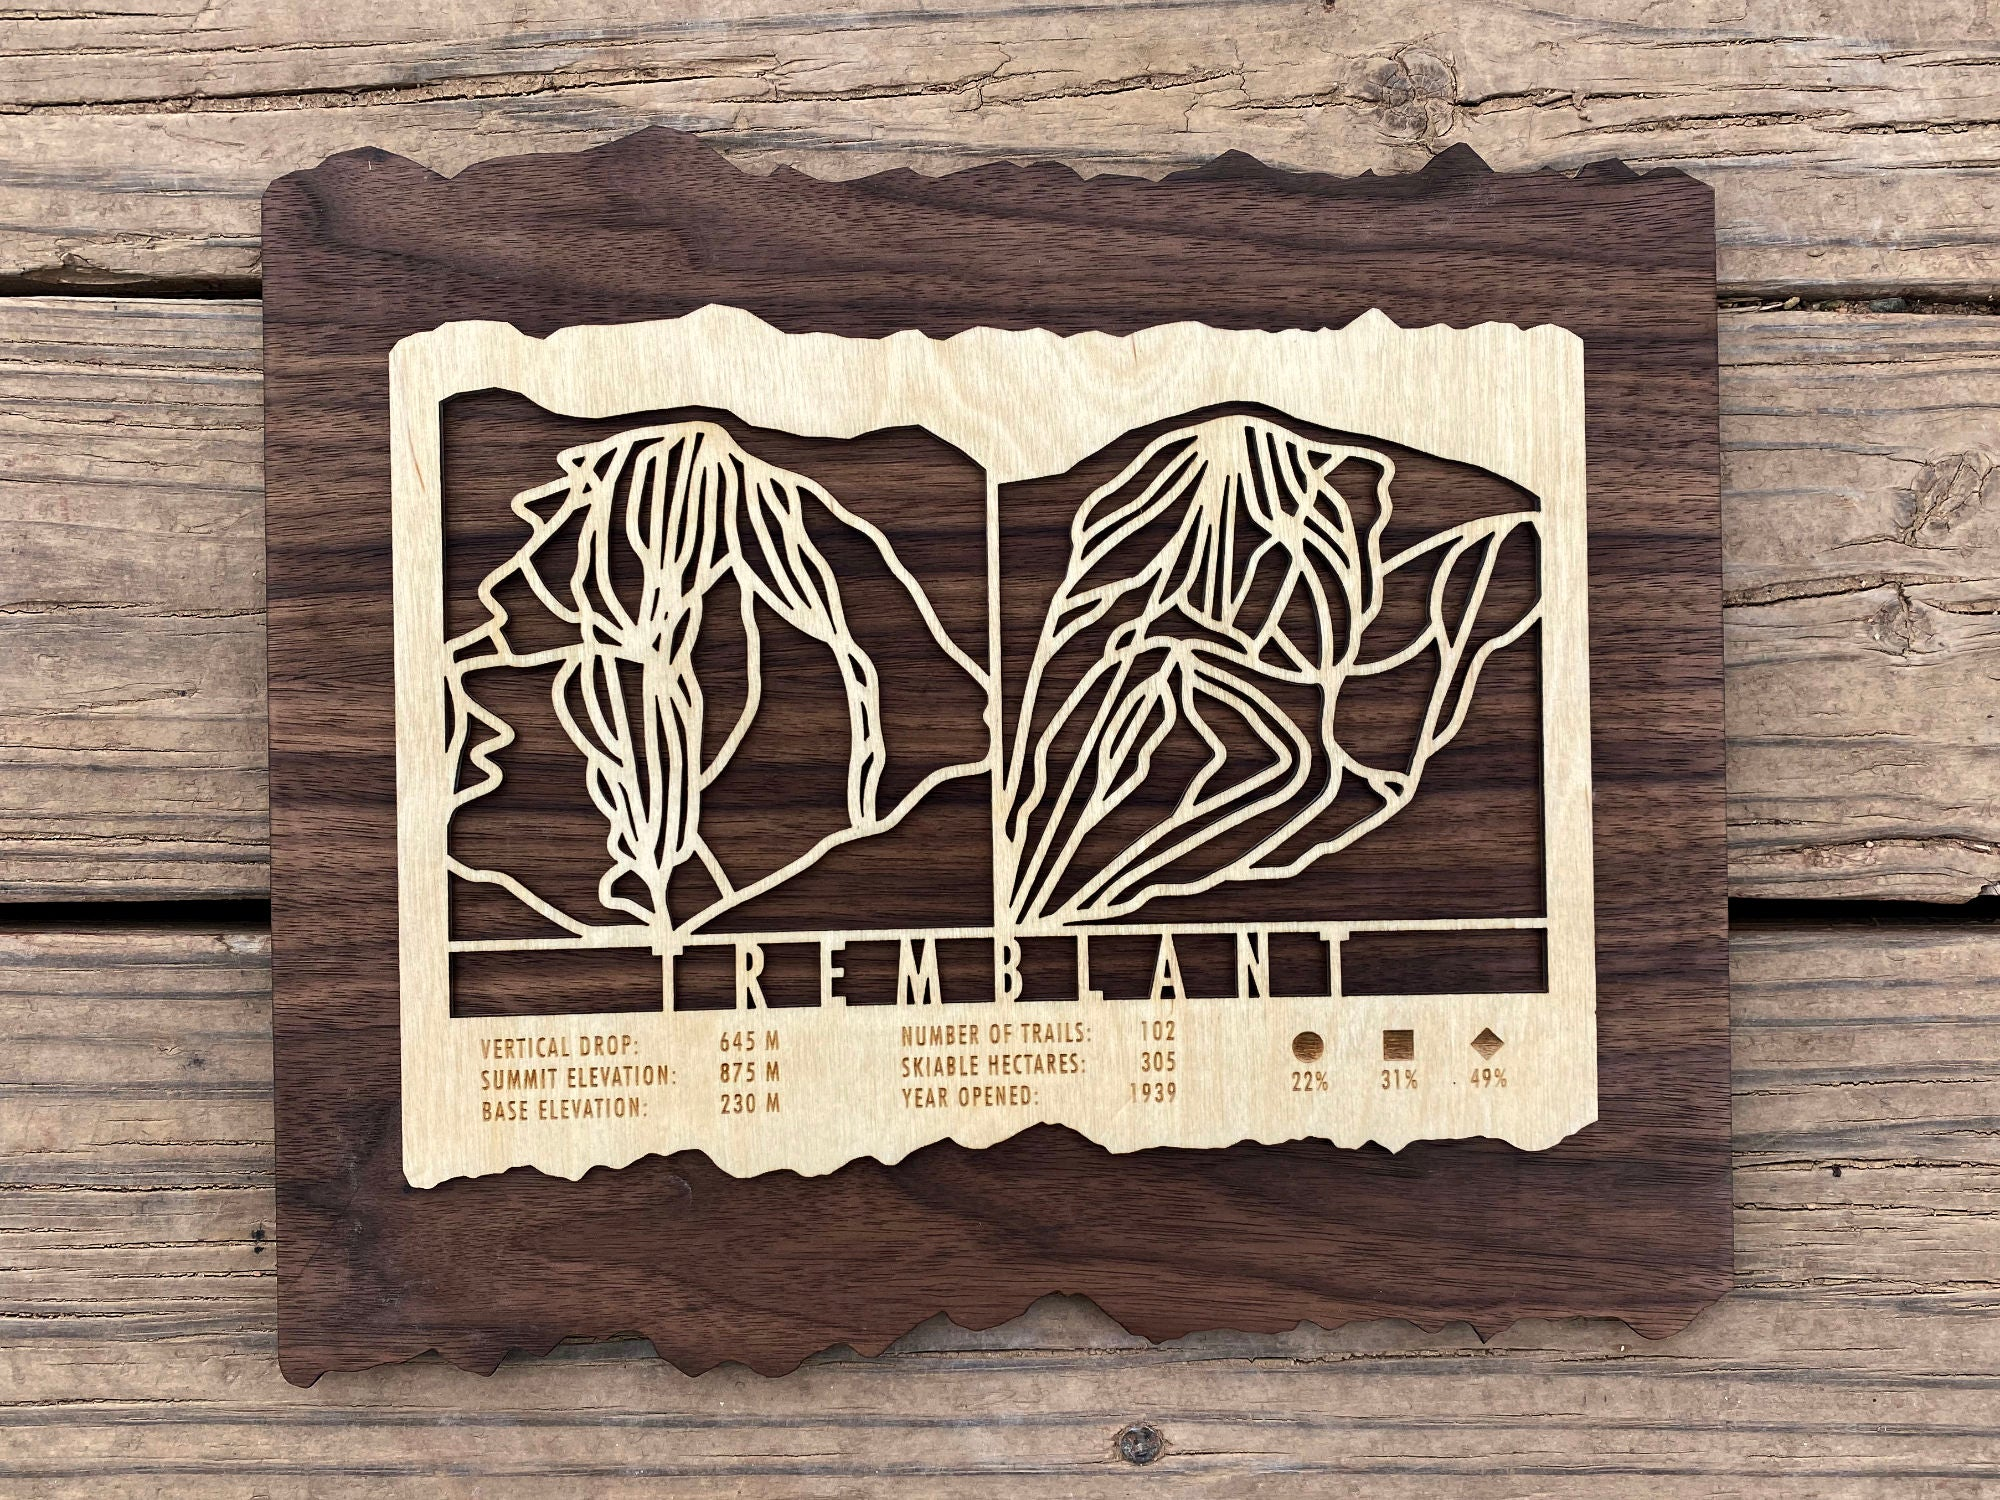 Tremblant Ski Decor Trail Map Art - MountainCut